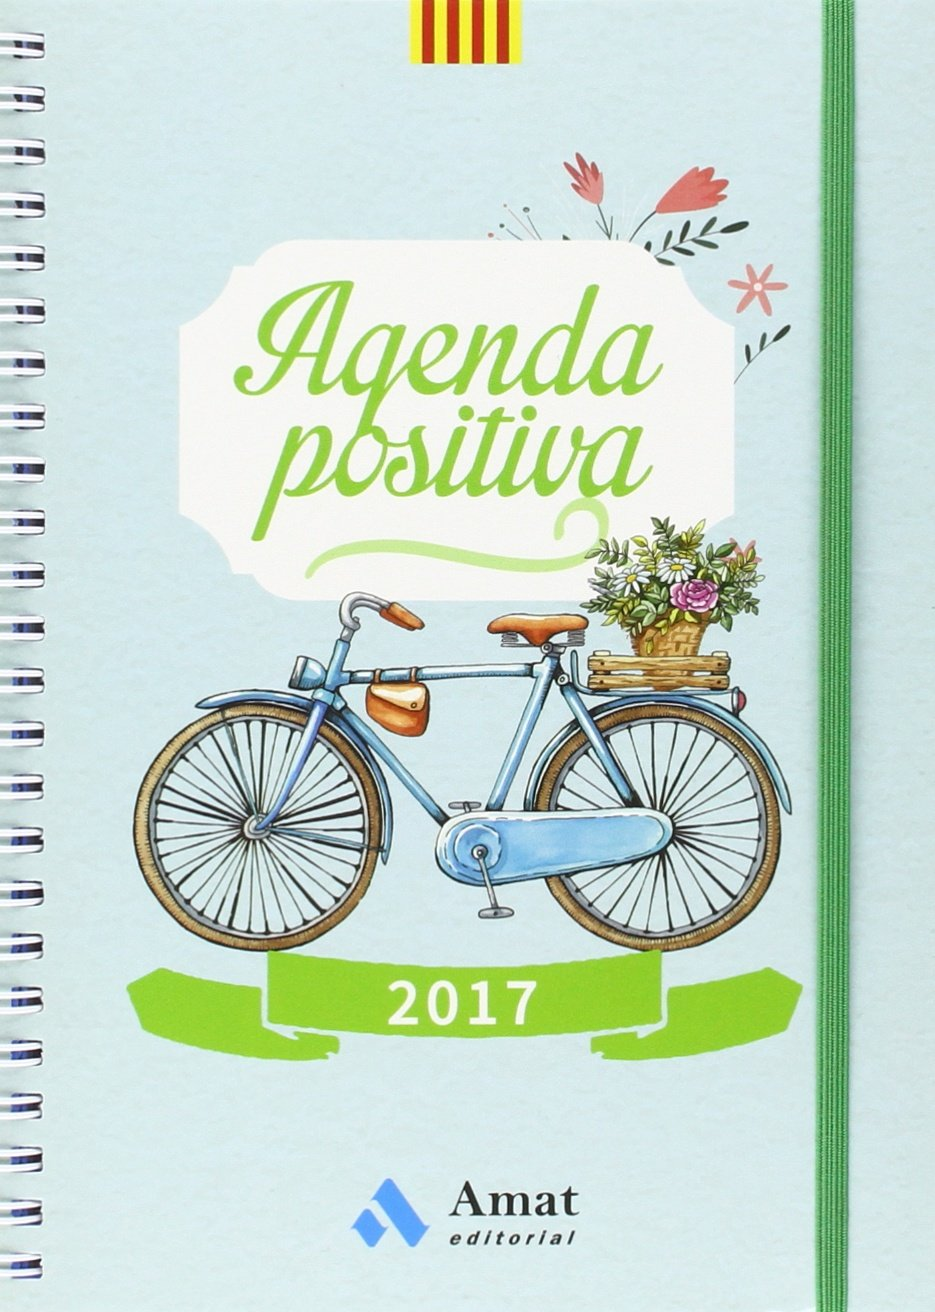 Agenda positiva 2017 (Català): Amazon.es: Amat Editorial: Libros